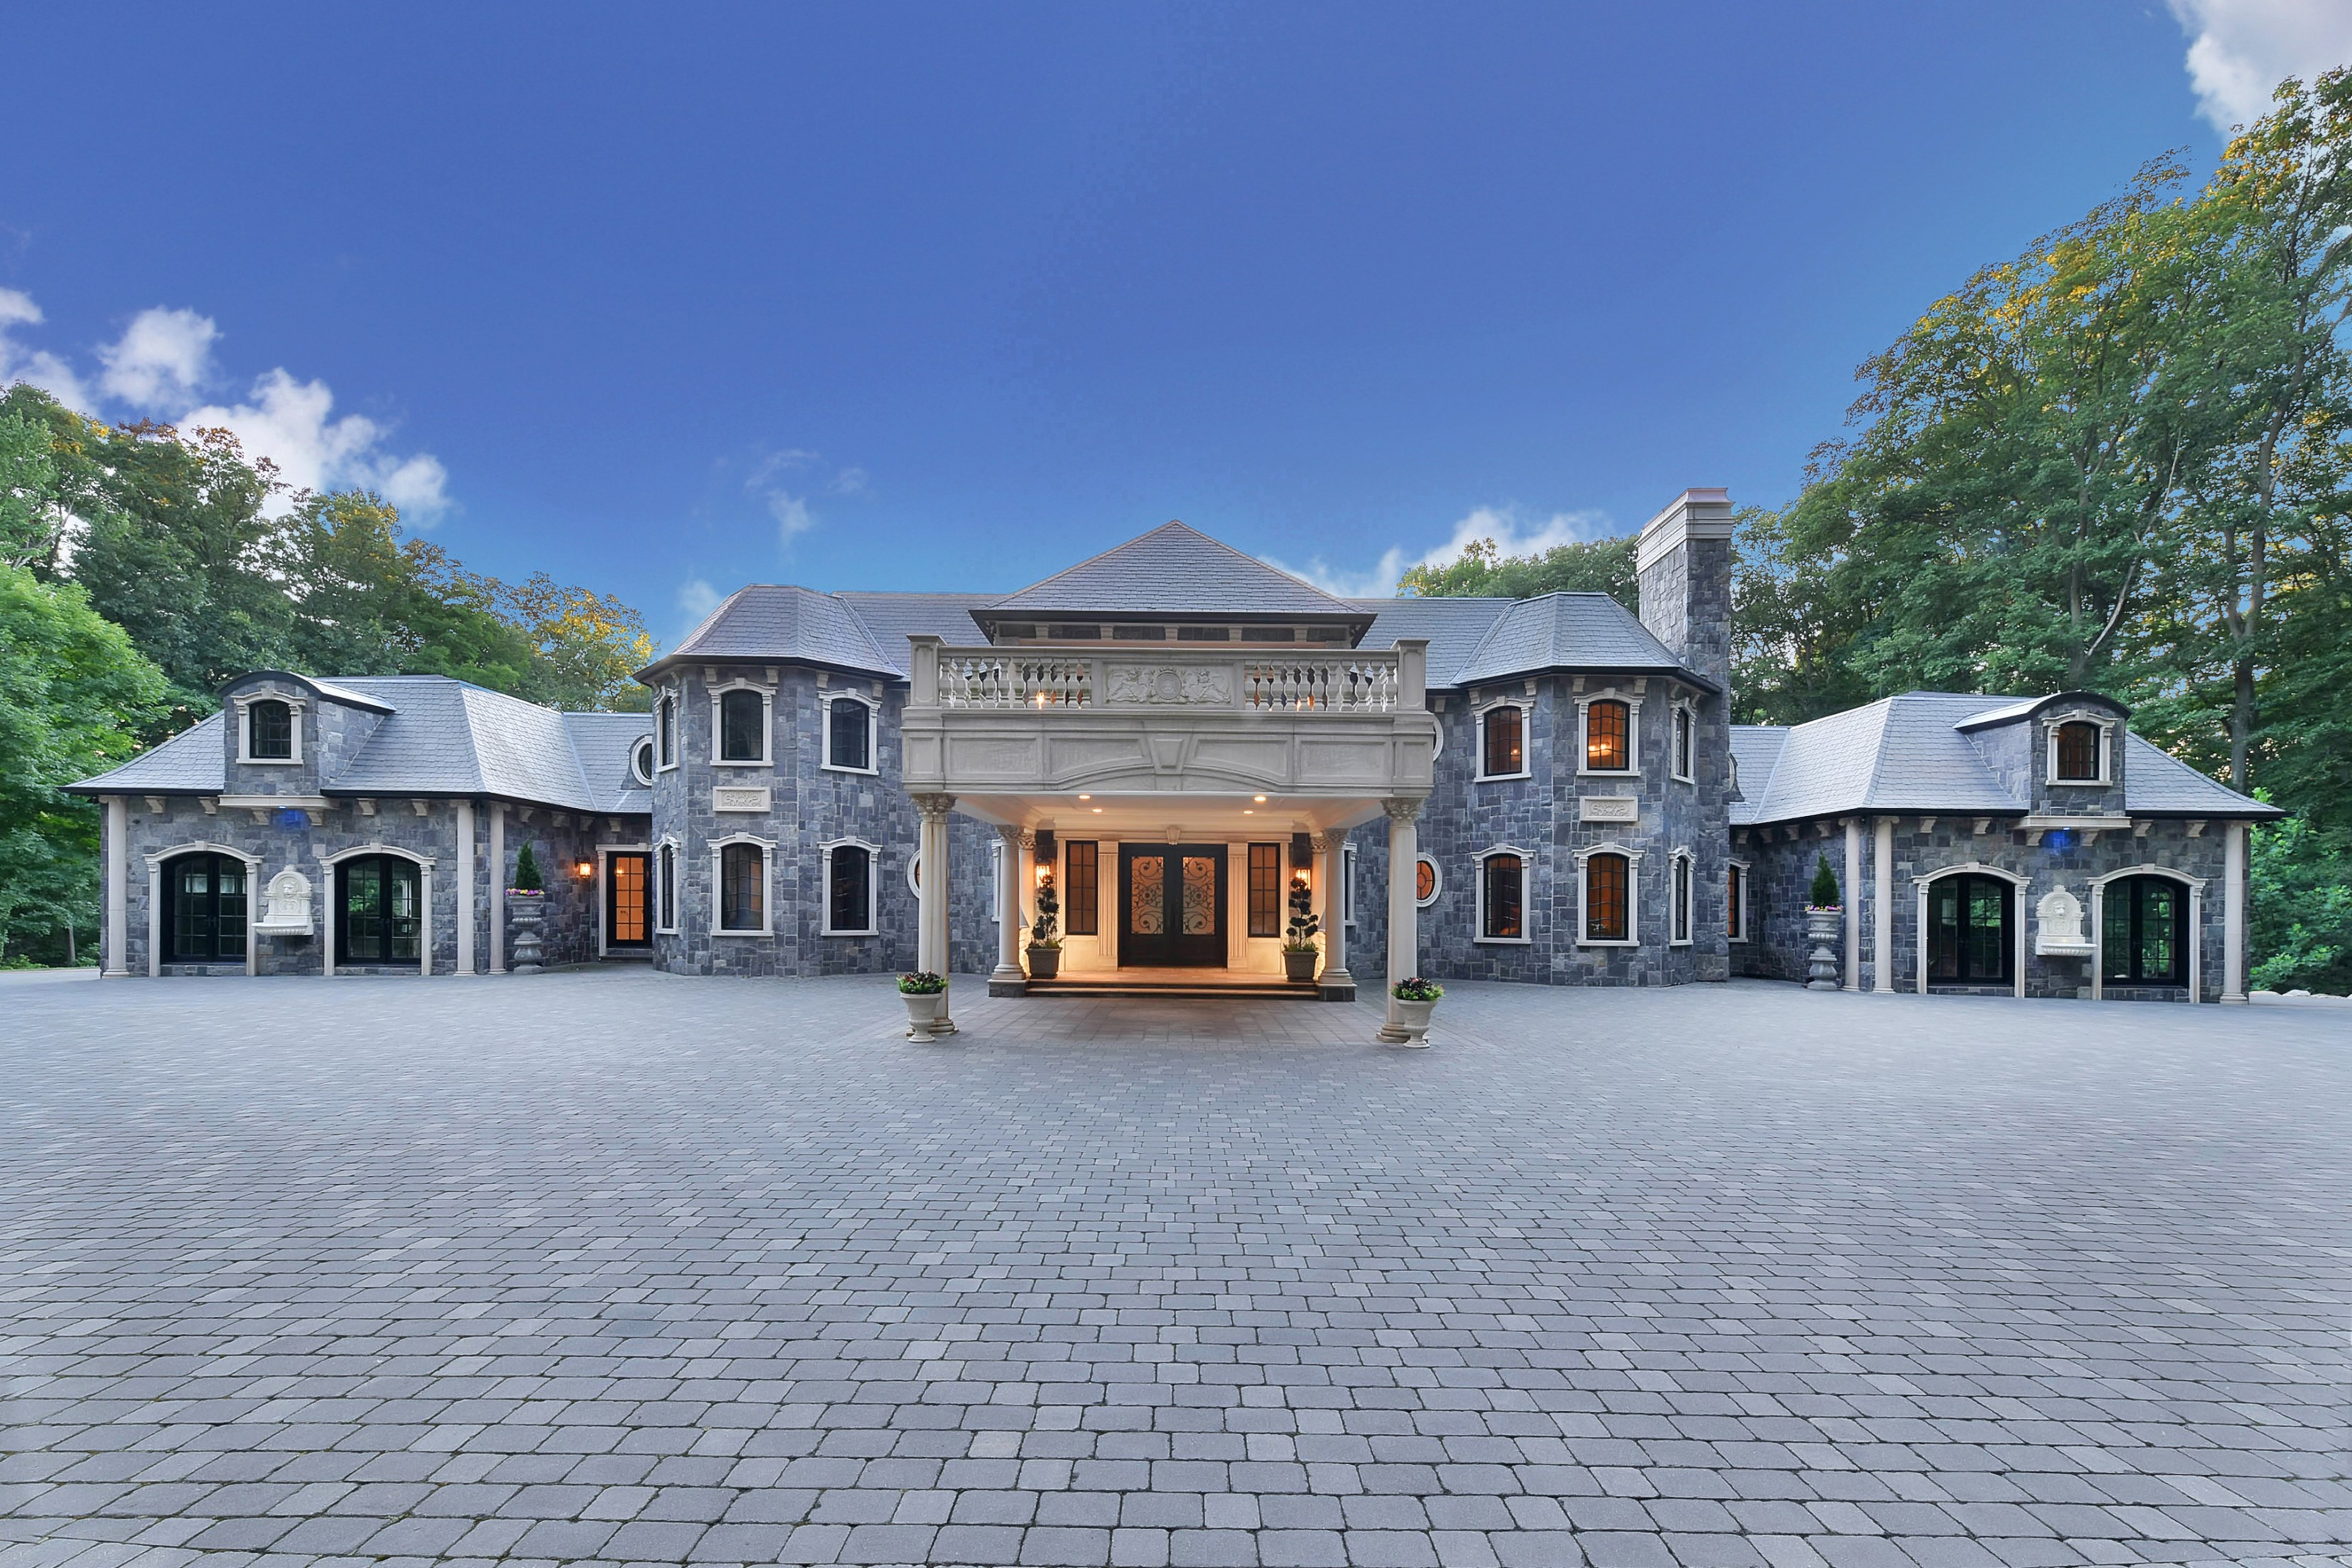 Single Family Home for Sale at Stone Palace in Saddle River 105 Chestnut Ridge Road Saddle River, 07458 United States